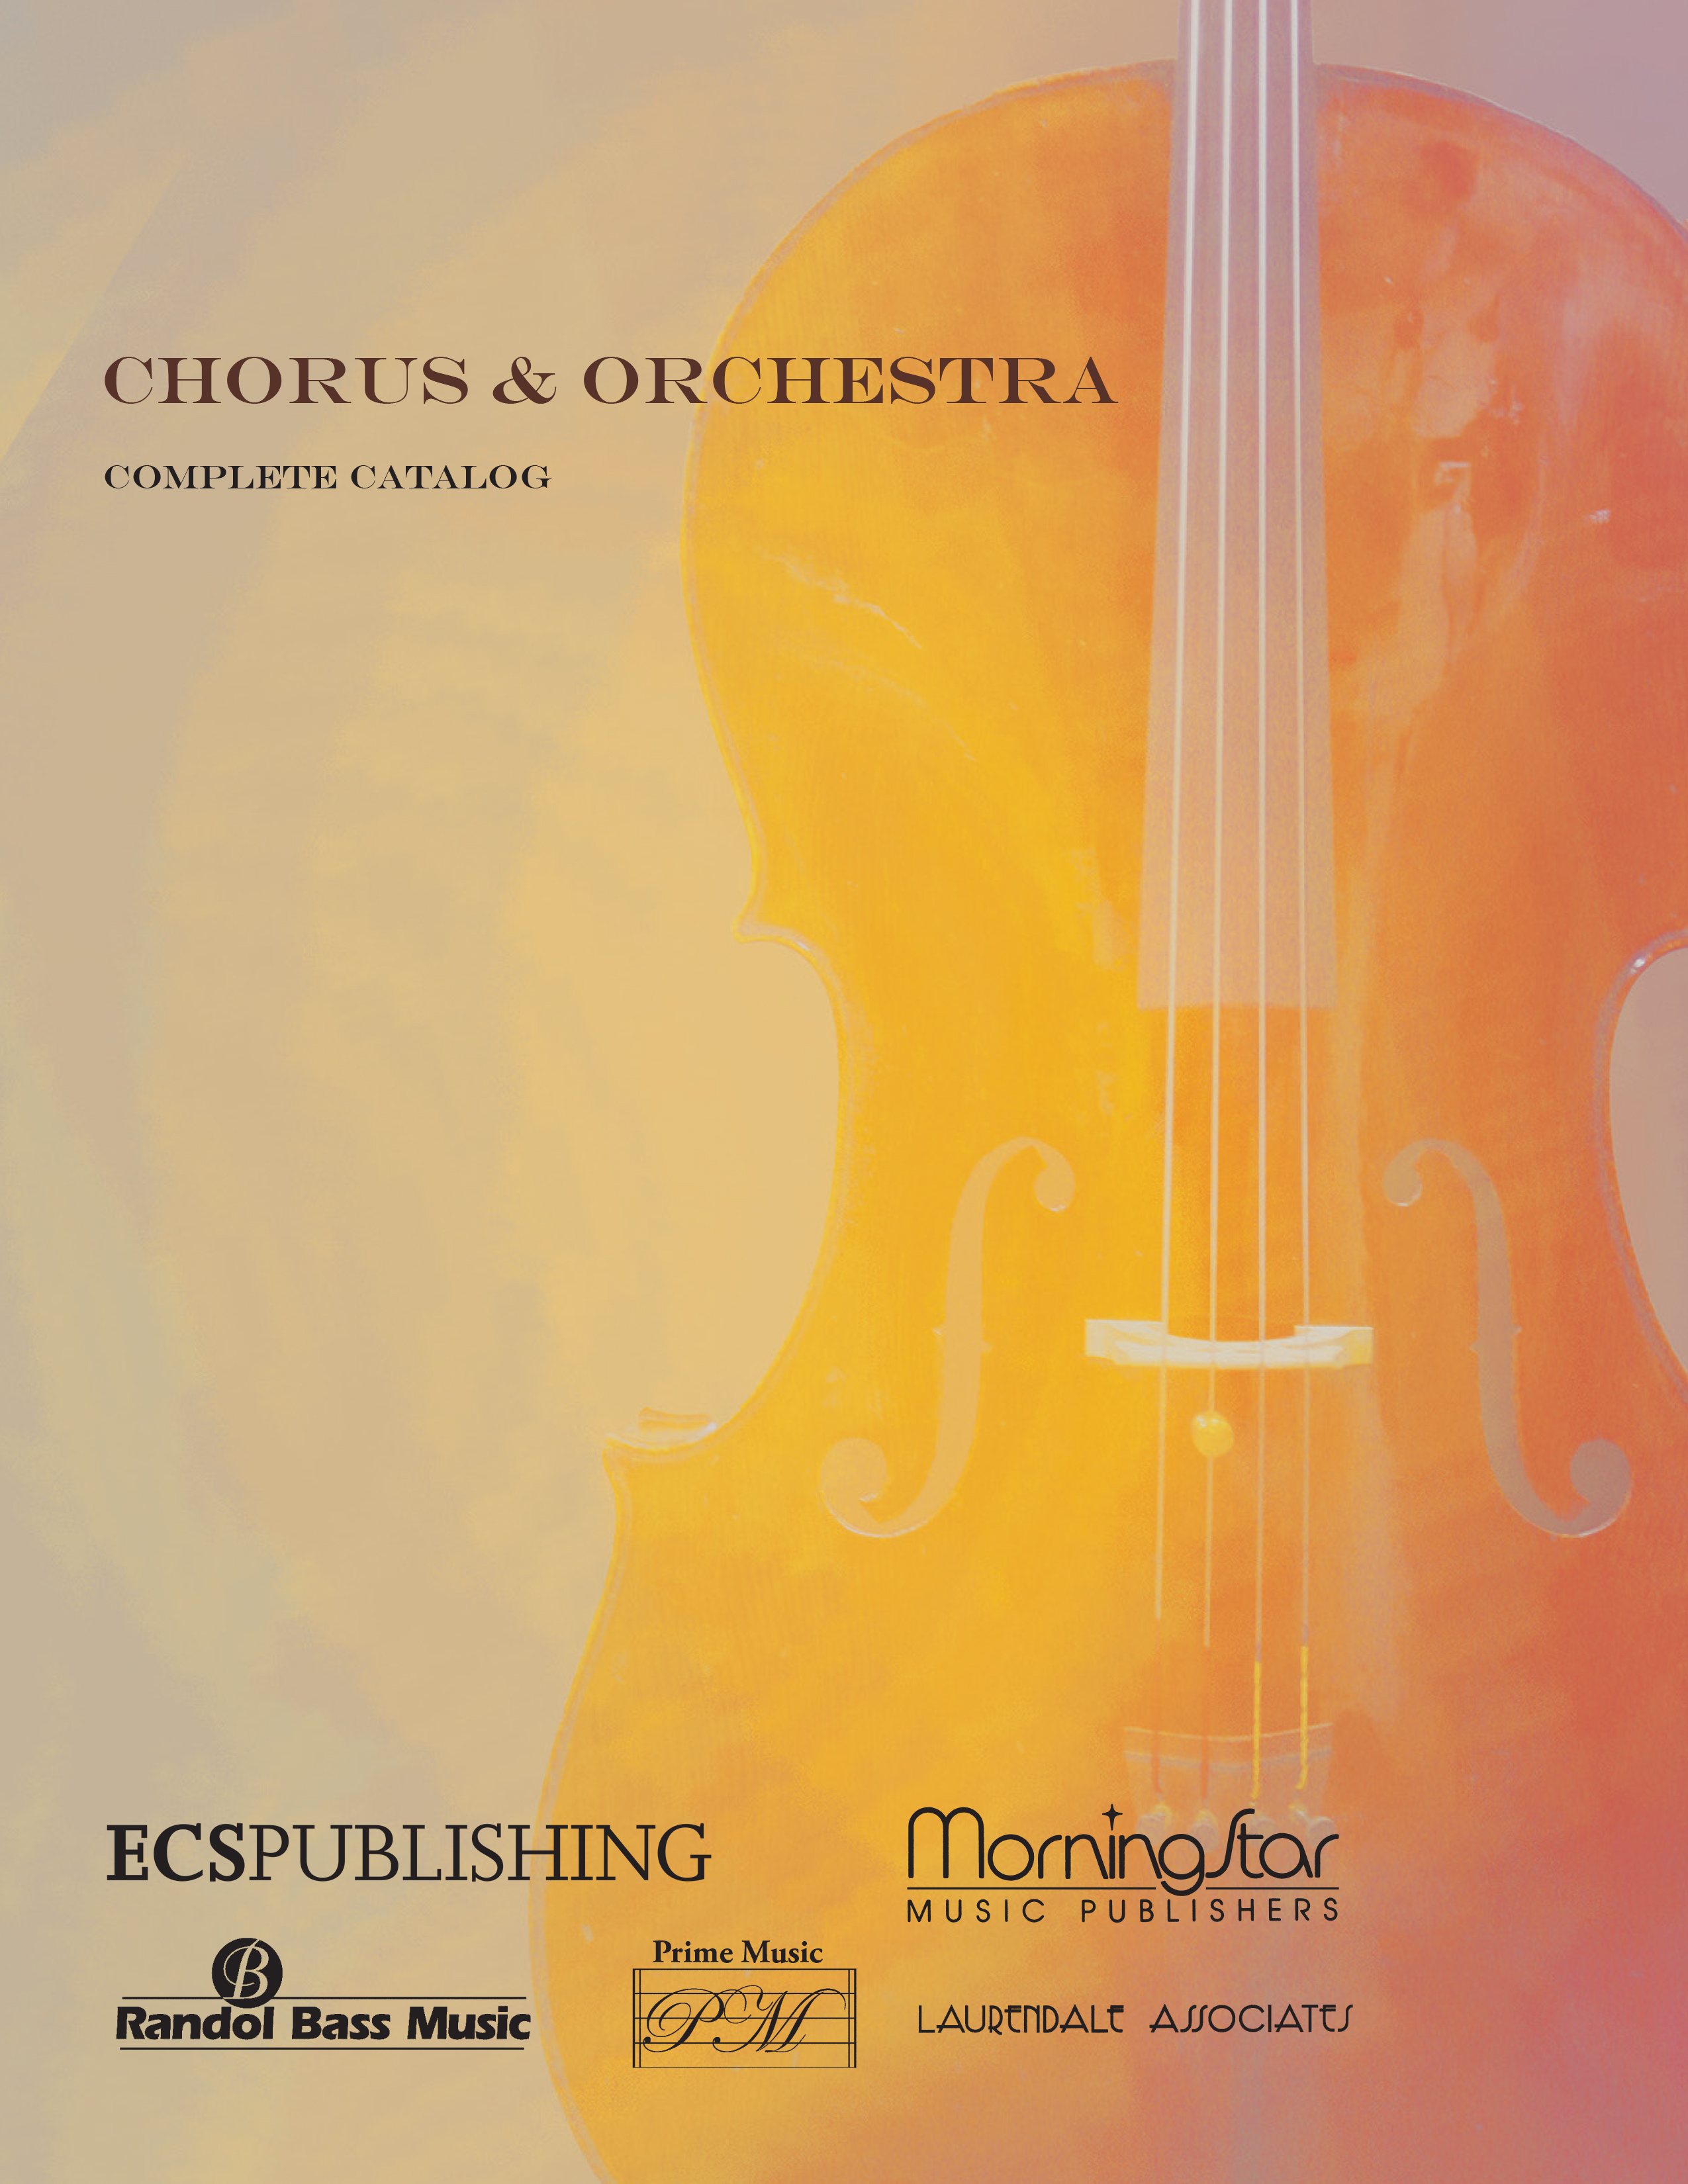 Canticle Distributing Chorus with Orchestra Catalog